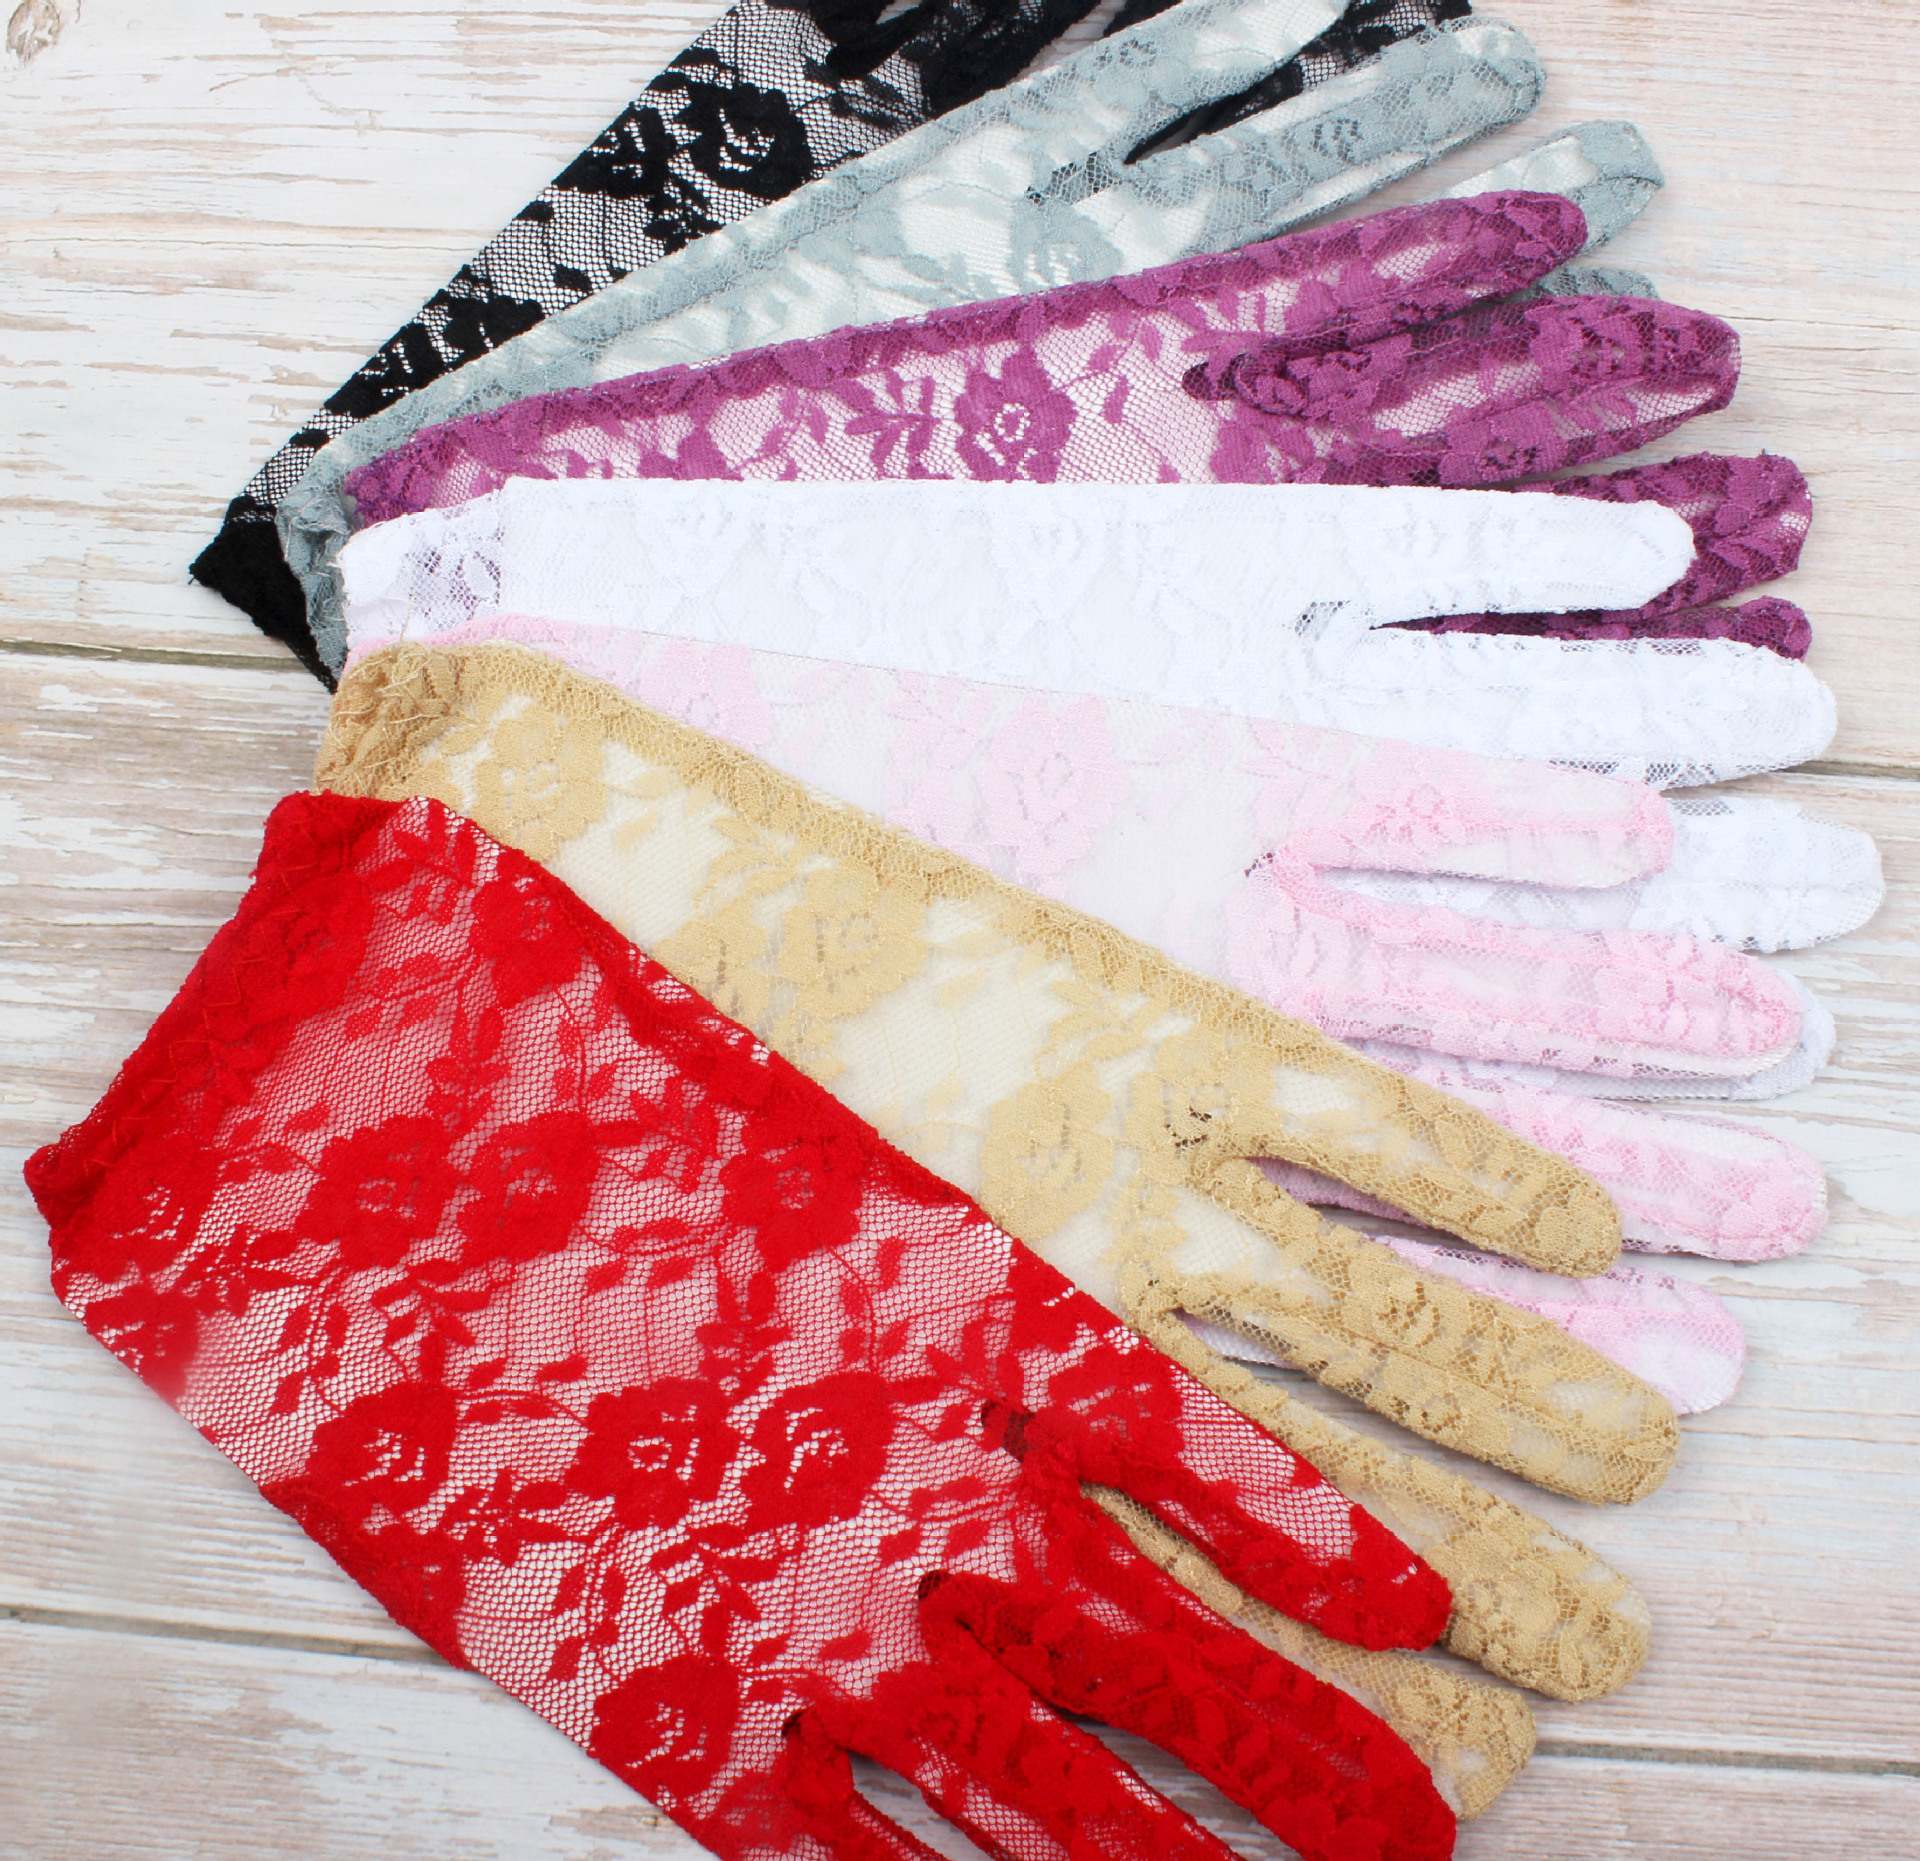 7 Colors Wedding Gloves Short White Lace Sheer Tulle Finger Gloves Accesories Bride Red Lace Wedding  Accessories Ivory Sheer